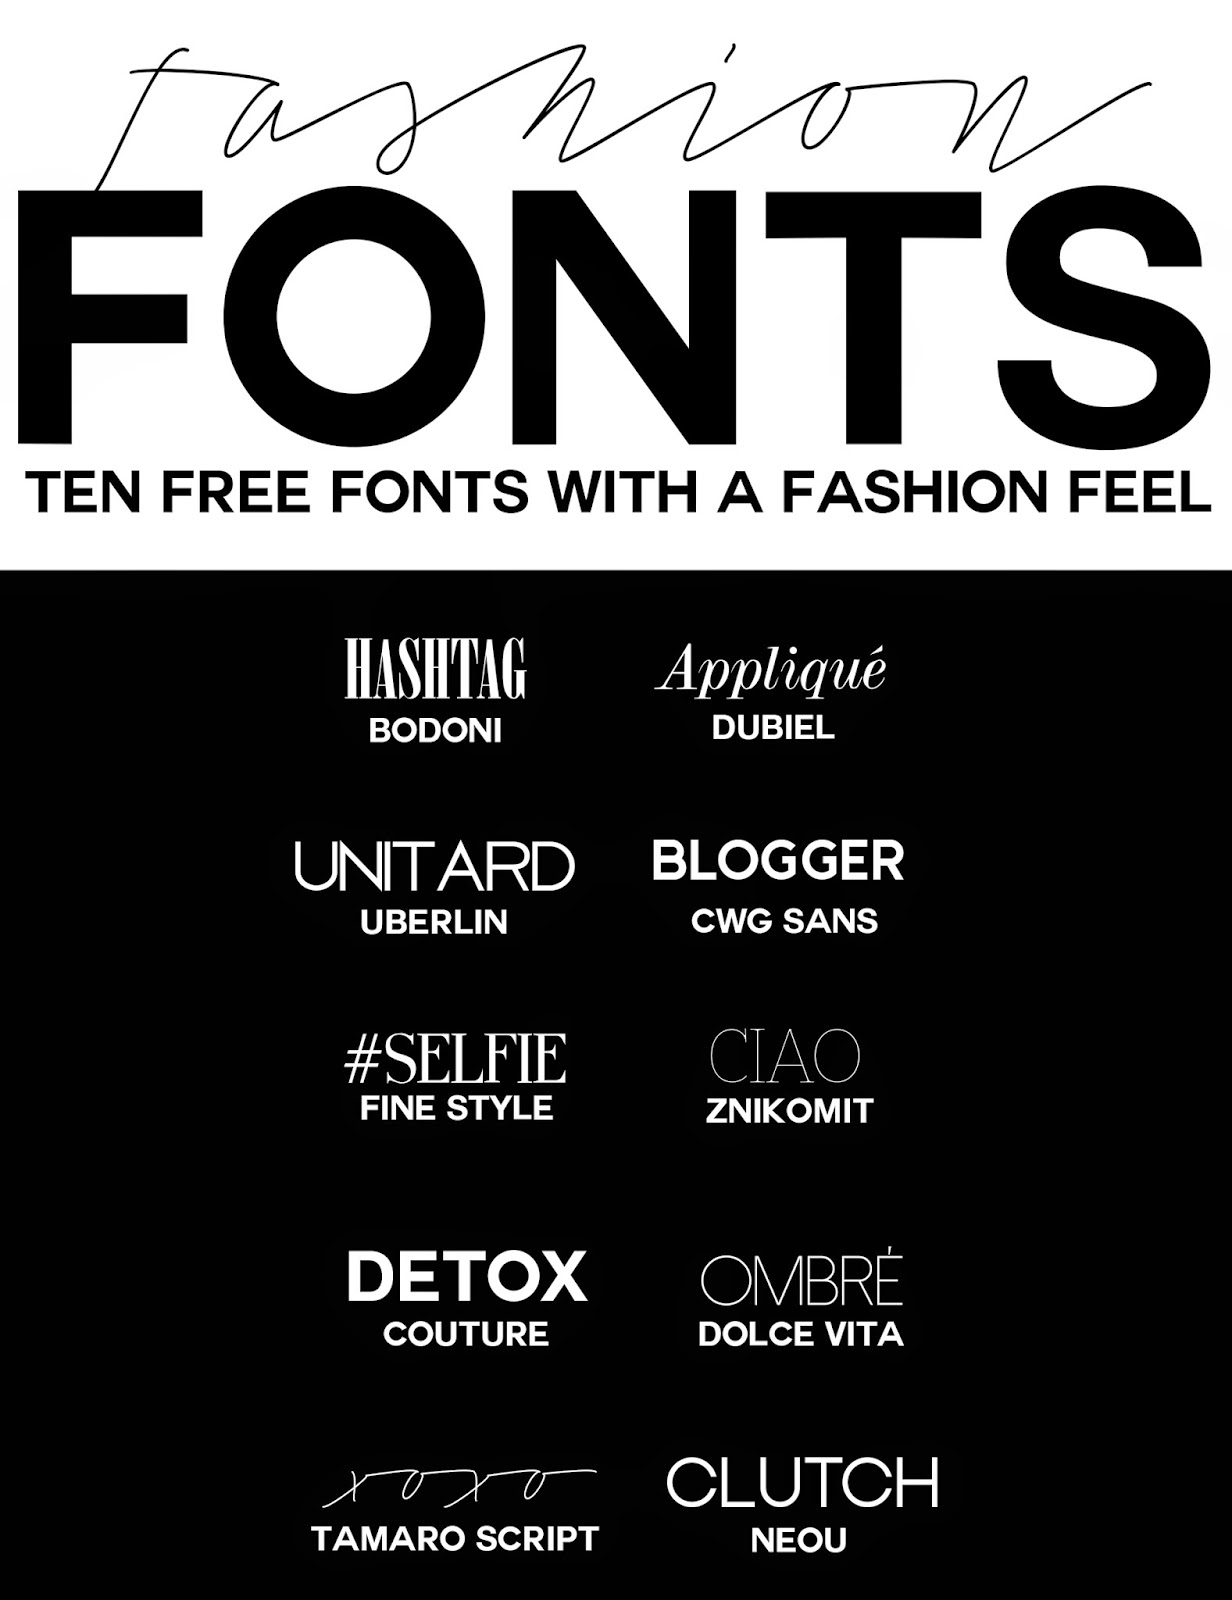 Fashion Fonts Here's a selection of fashion inspired fonts, which can ...